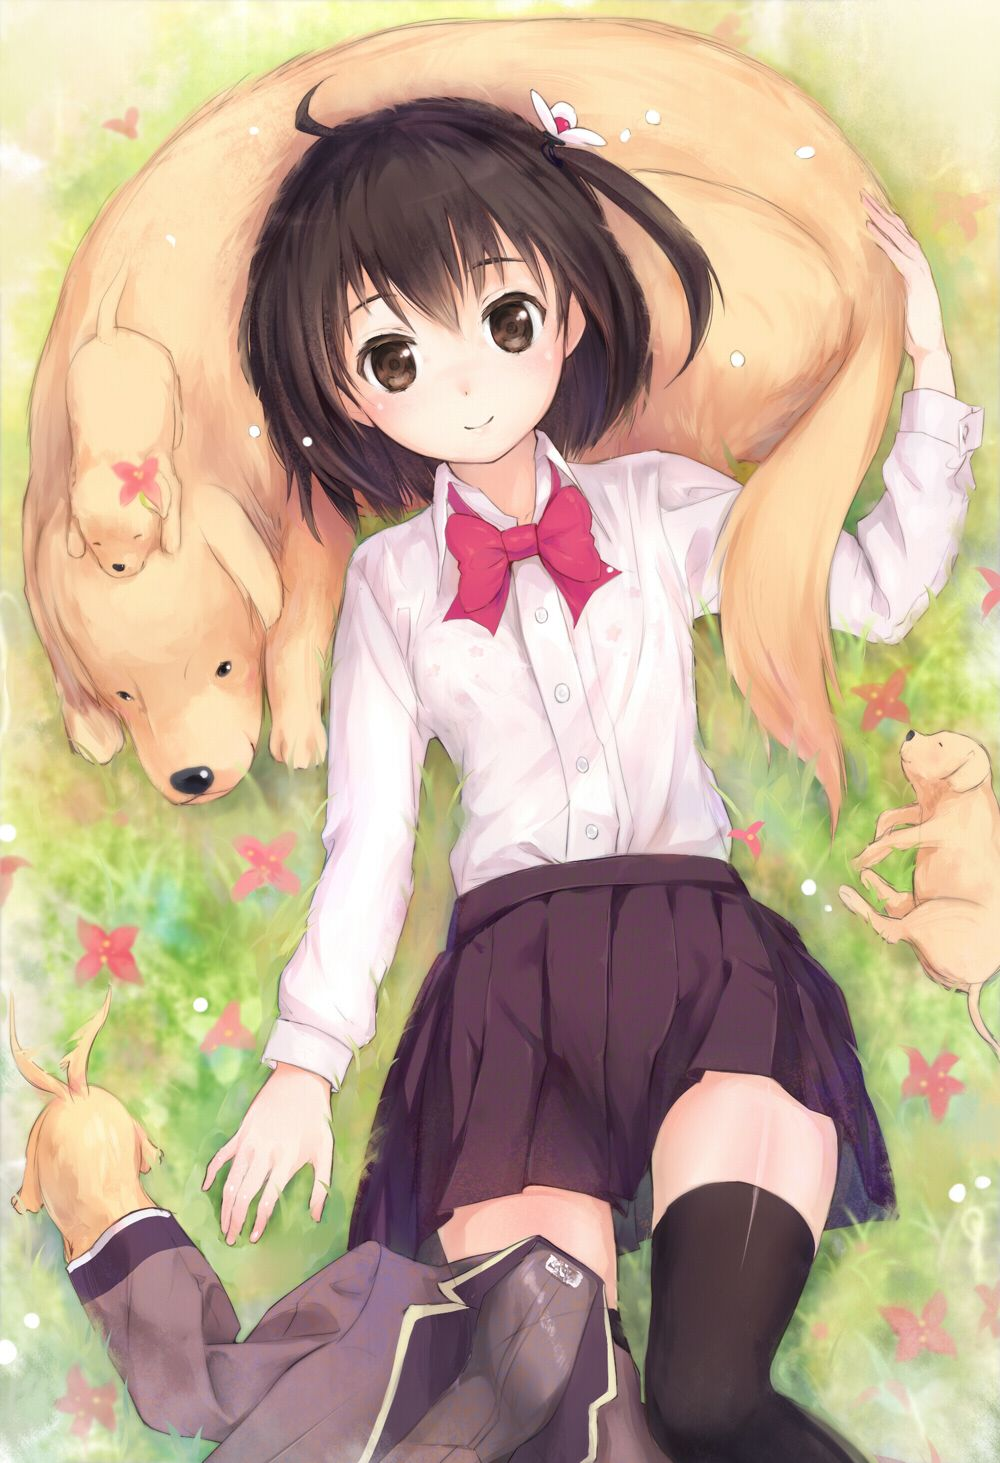 Amazing Pastel Anime Adorable Dog - 7ef2377198f3af3e2545853bedb4c199  Pic_646663  .jpg